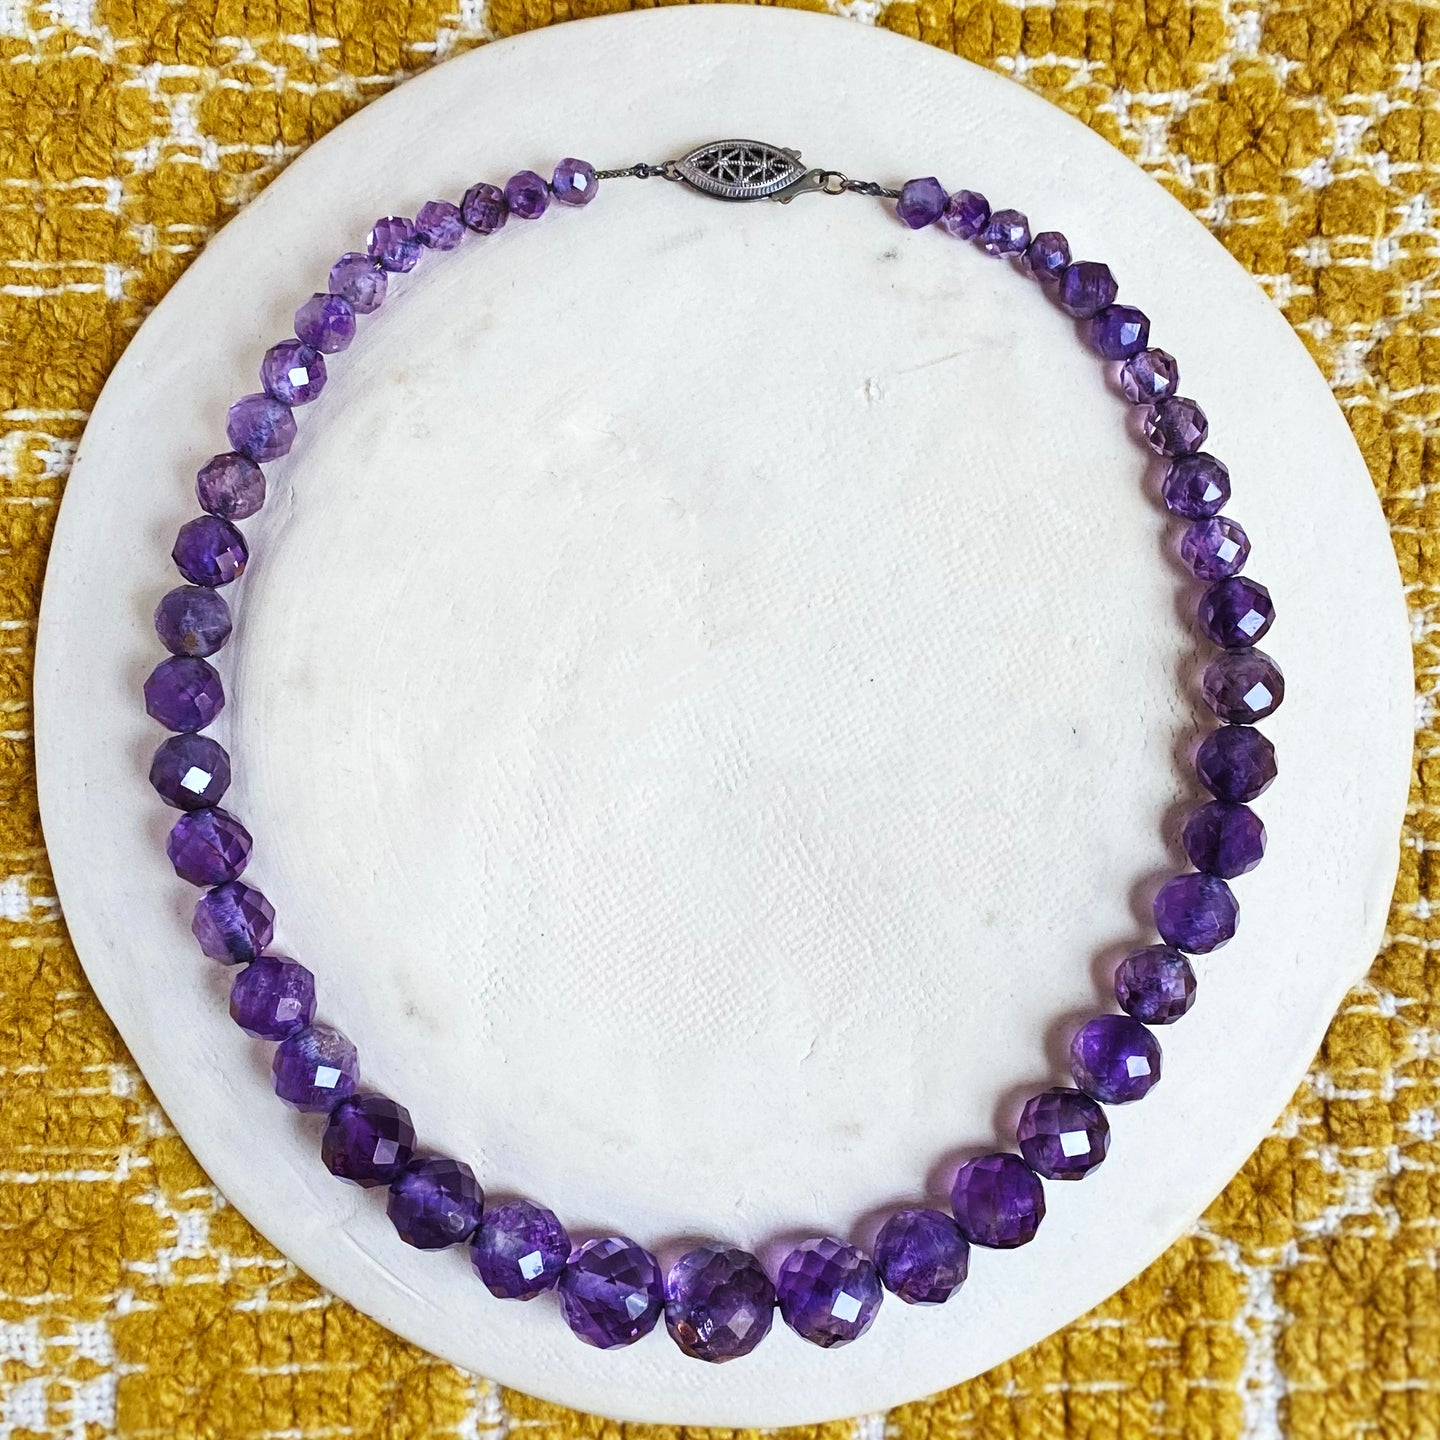 Faceted Amethyst Bead Necklace c1930